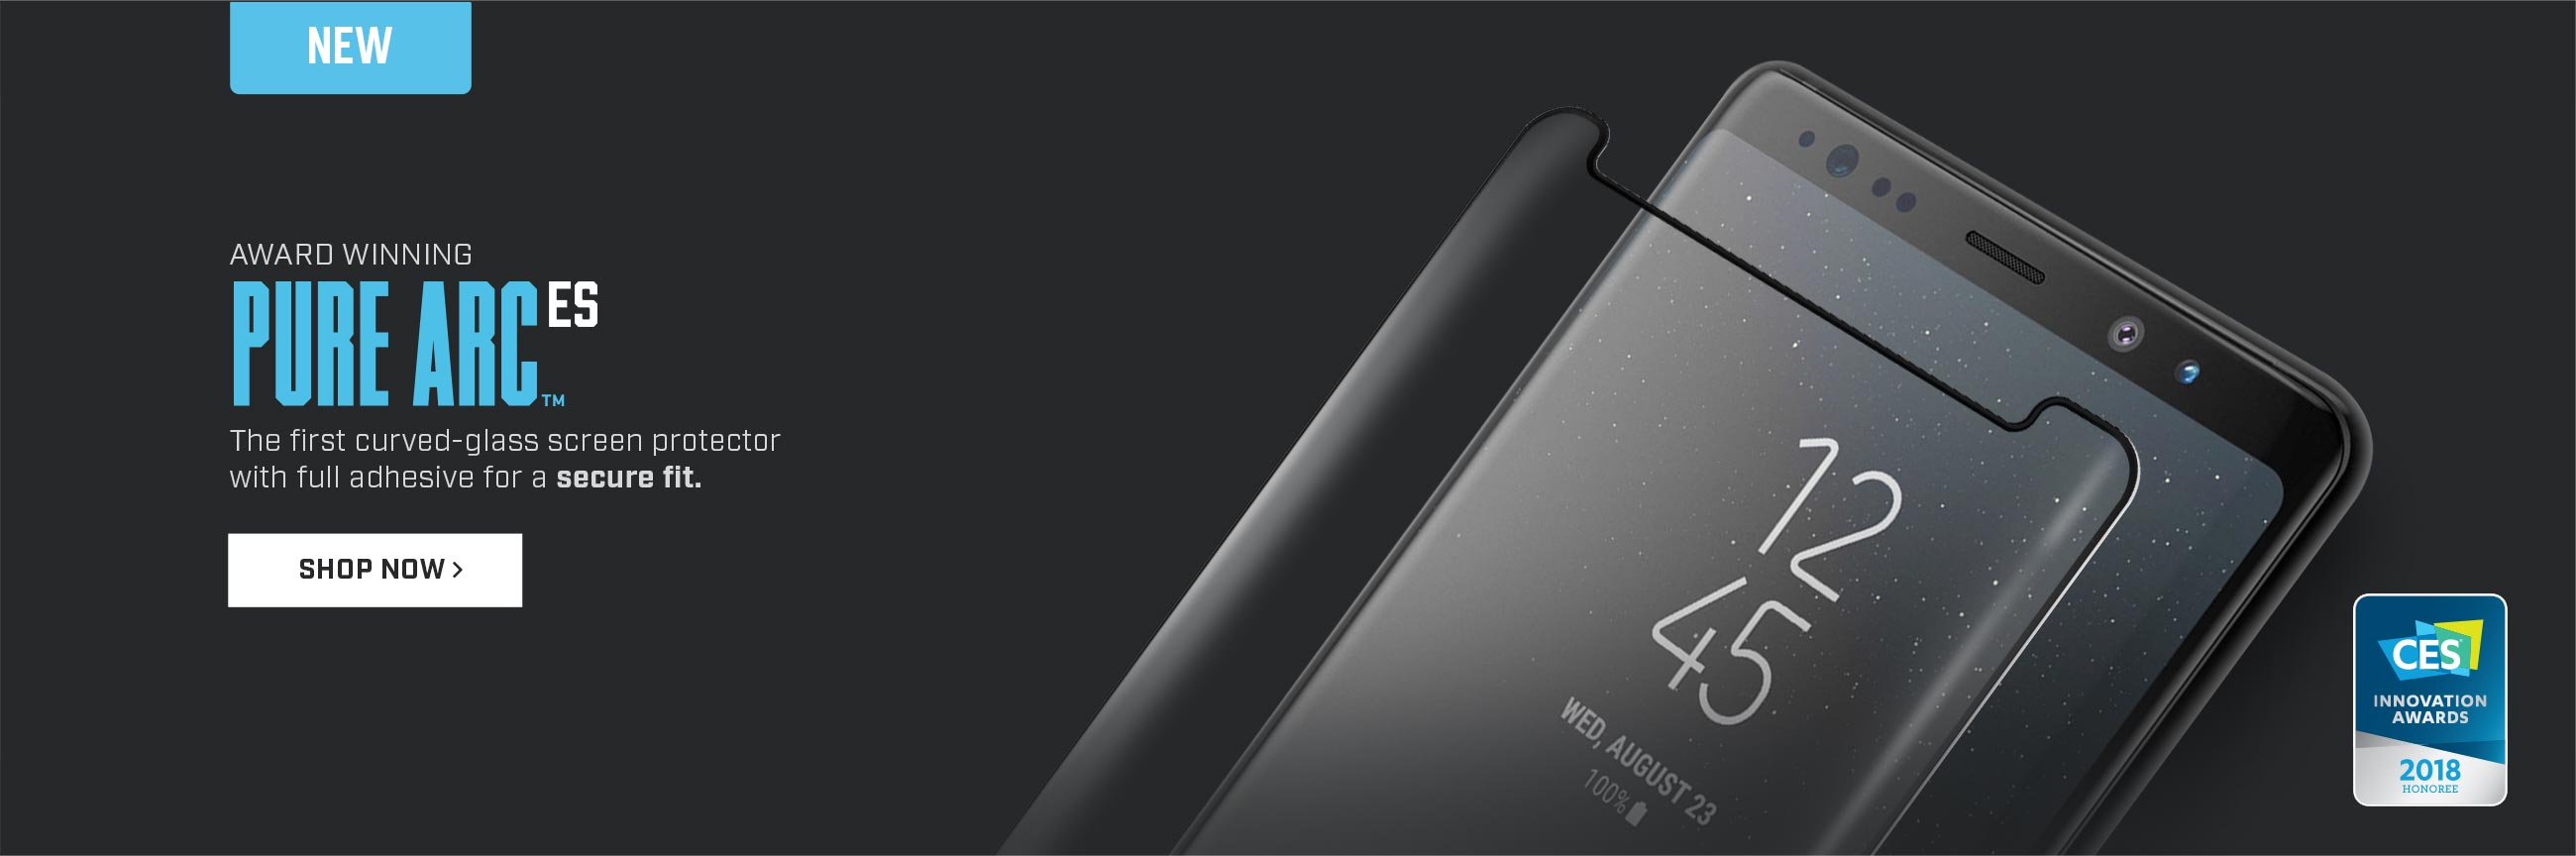 The first curved-glass screen protector with full adhesive for a secure fit